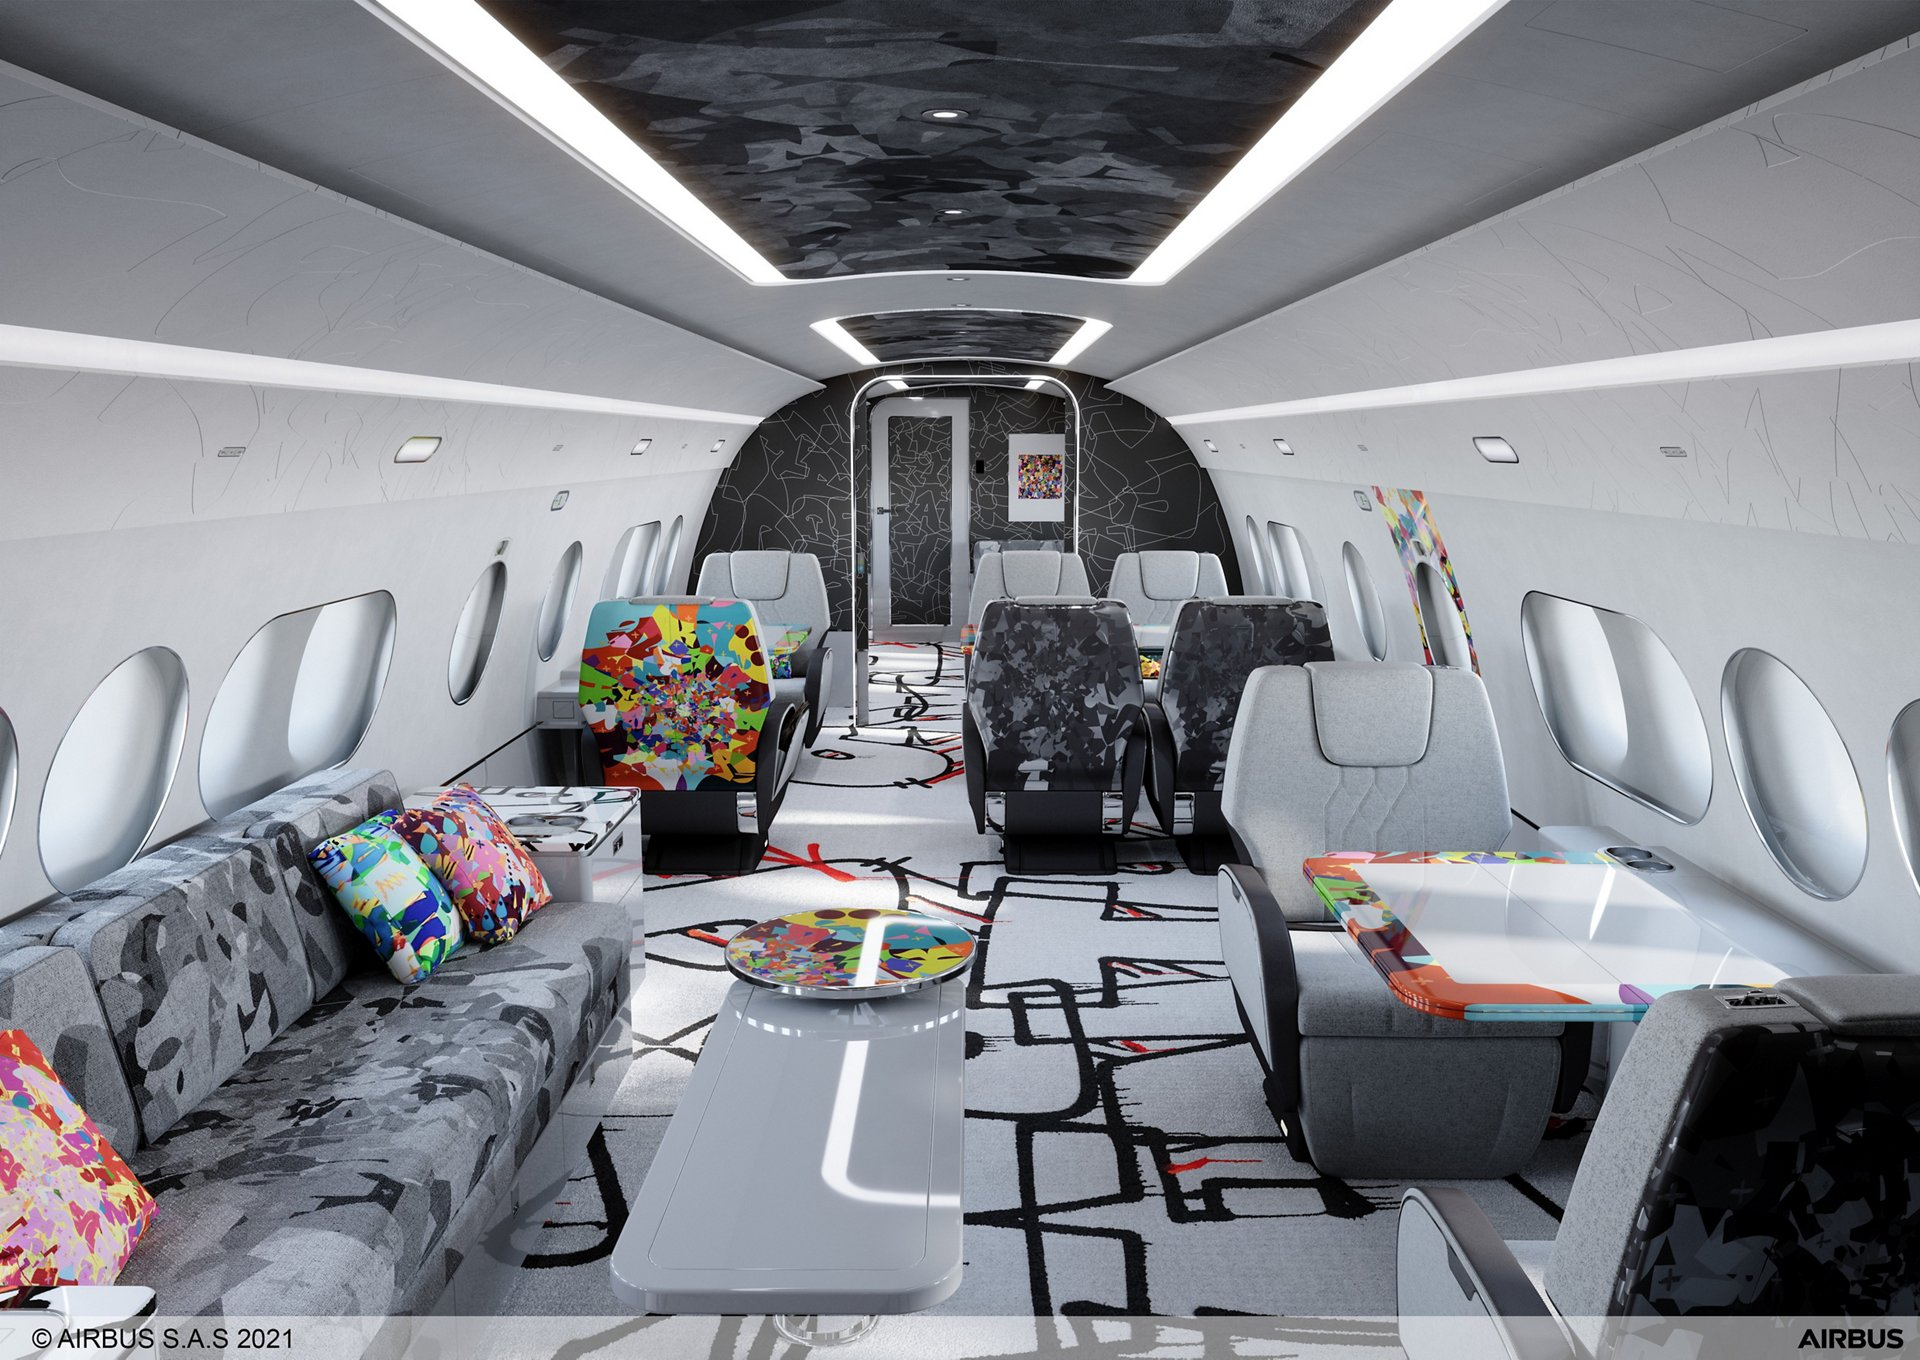 ACJ and contemporary artist, Cyril Kongo, partner to offer a special ACJ TwoTwenty Airbus cabin edition